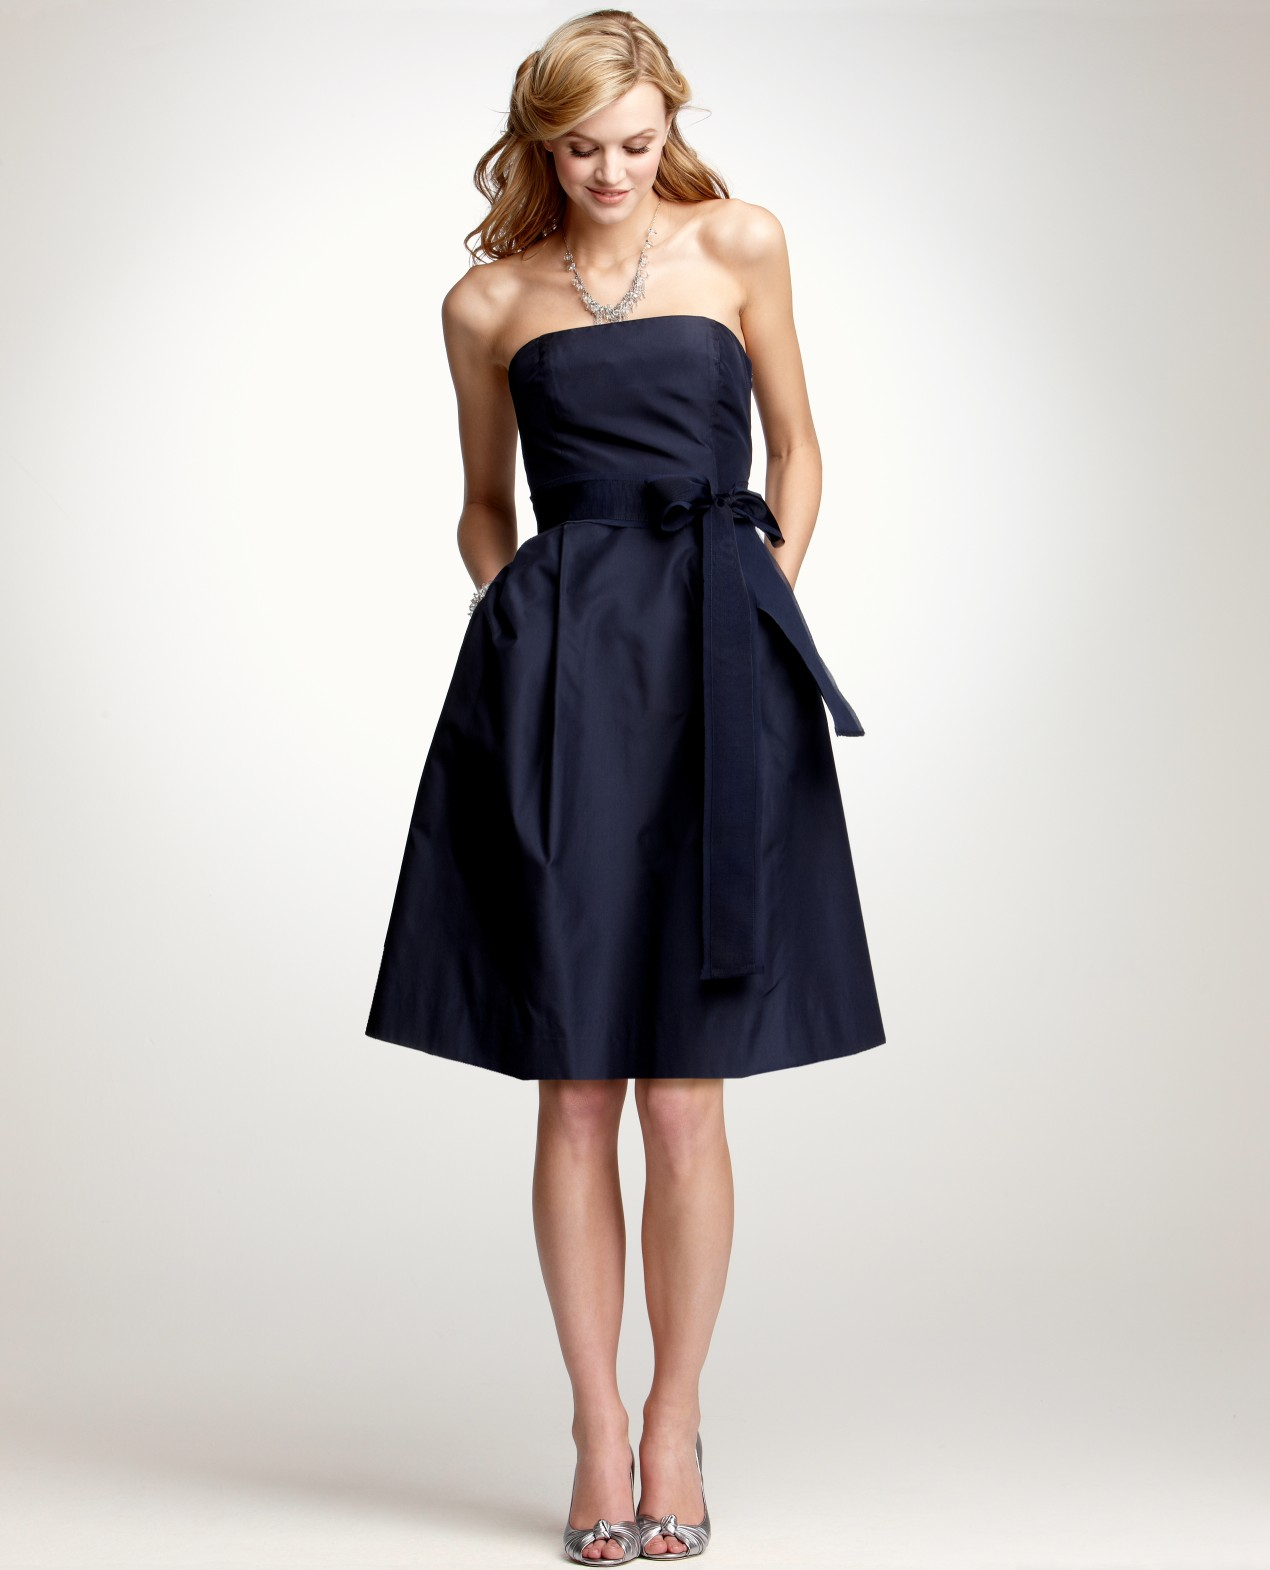 Ann taylor silk taffeta strapless bridesmaid dress in blue for Wedding dresses ann taylor